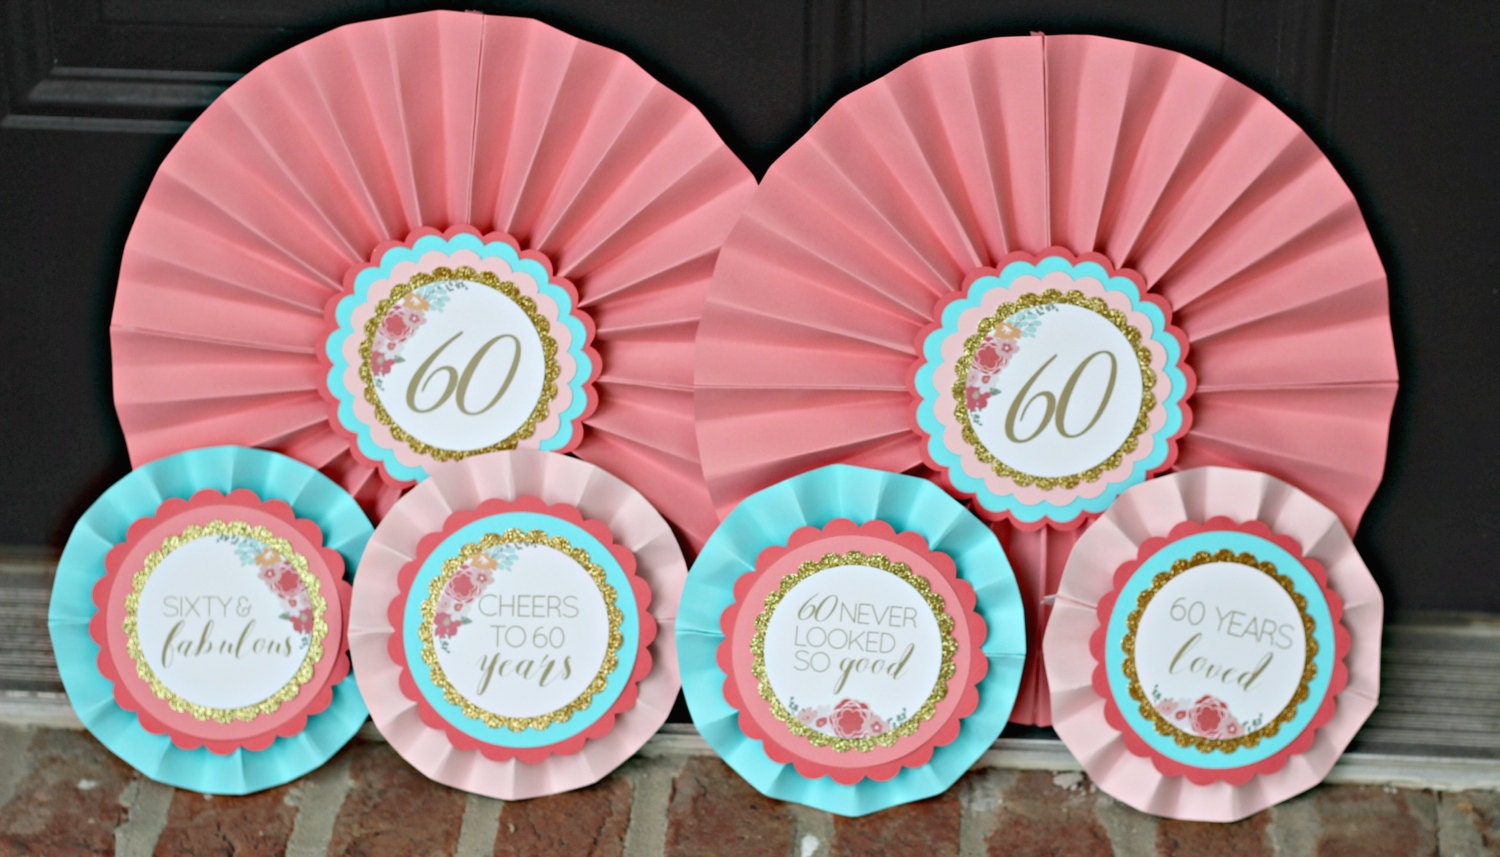 60TH BIRTHDAY DECORATIONS Decorative Rosettes Paper | Etsy